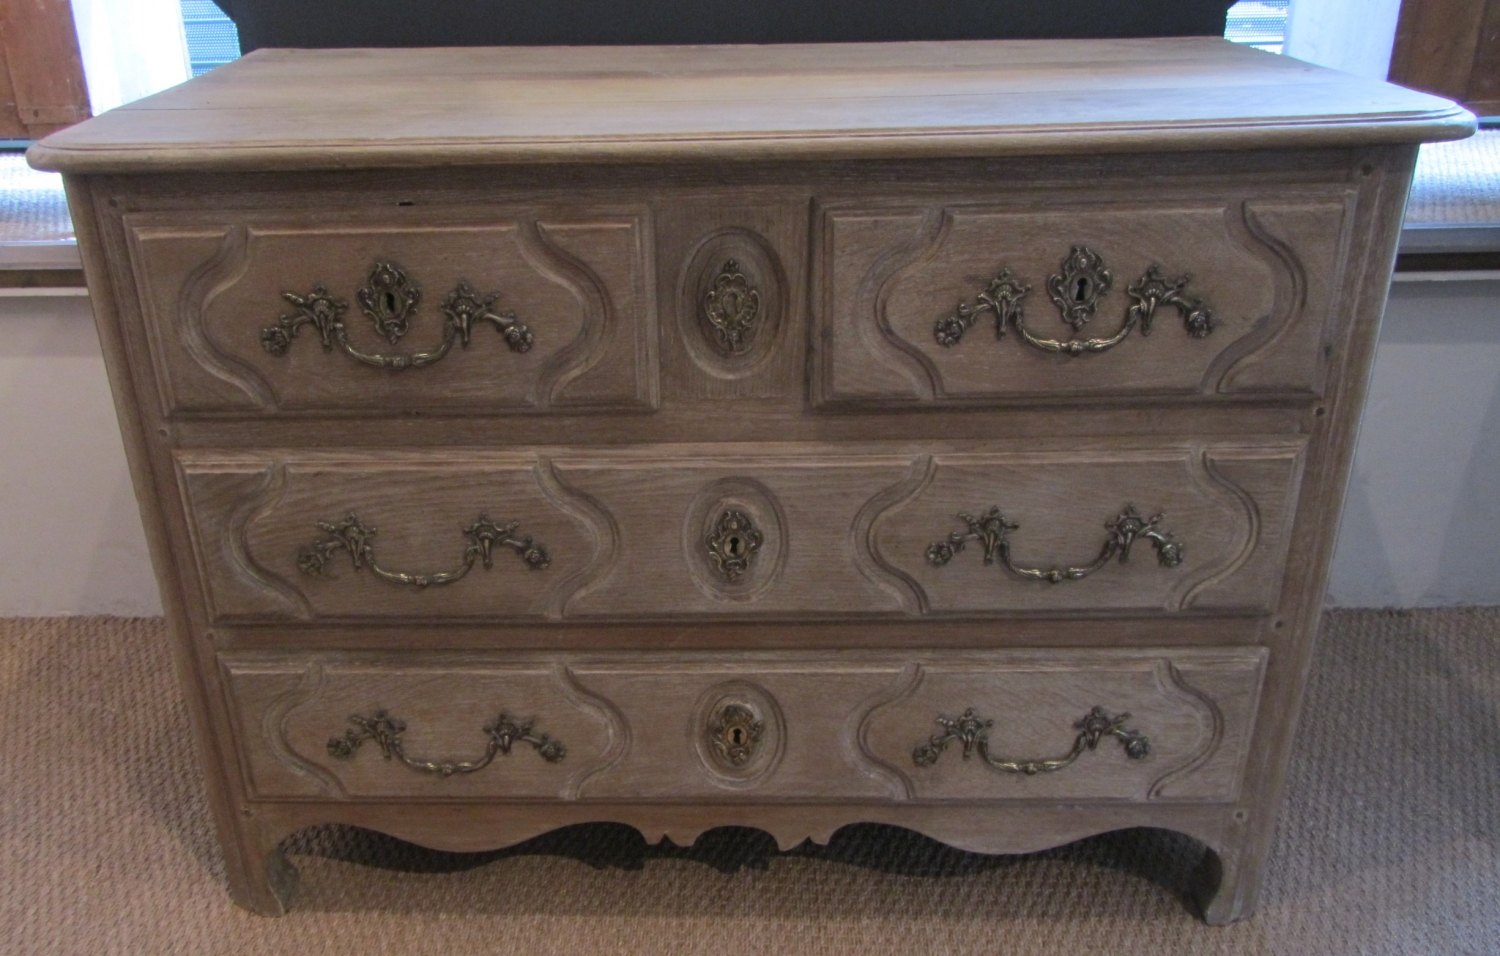 An 18thC French provincial commode